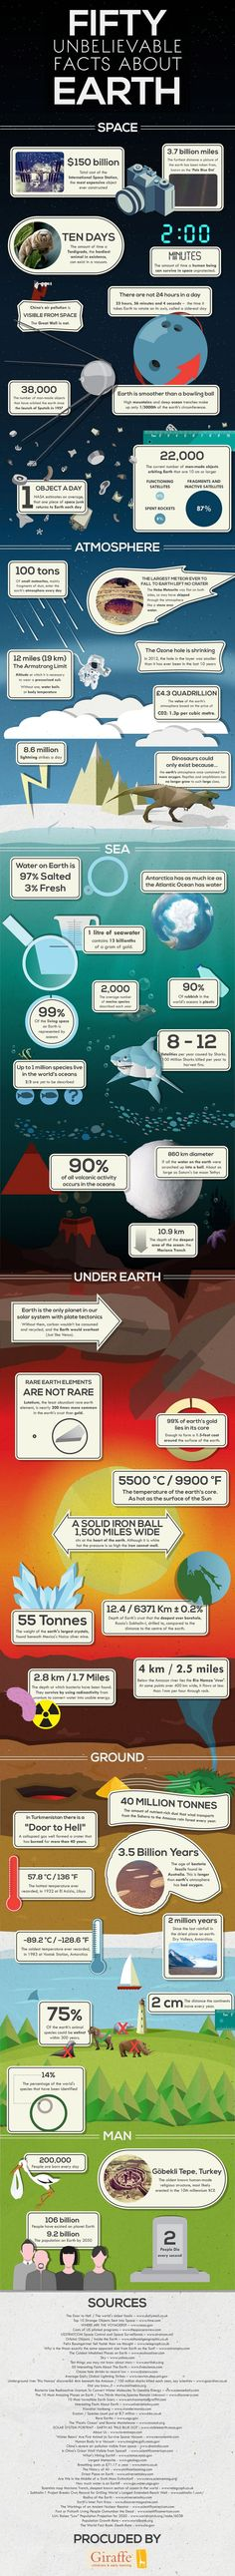 Interesting facts about earth #space #science #education